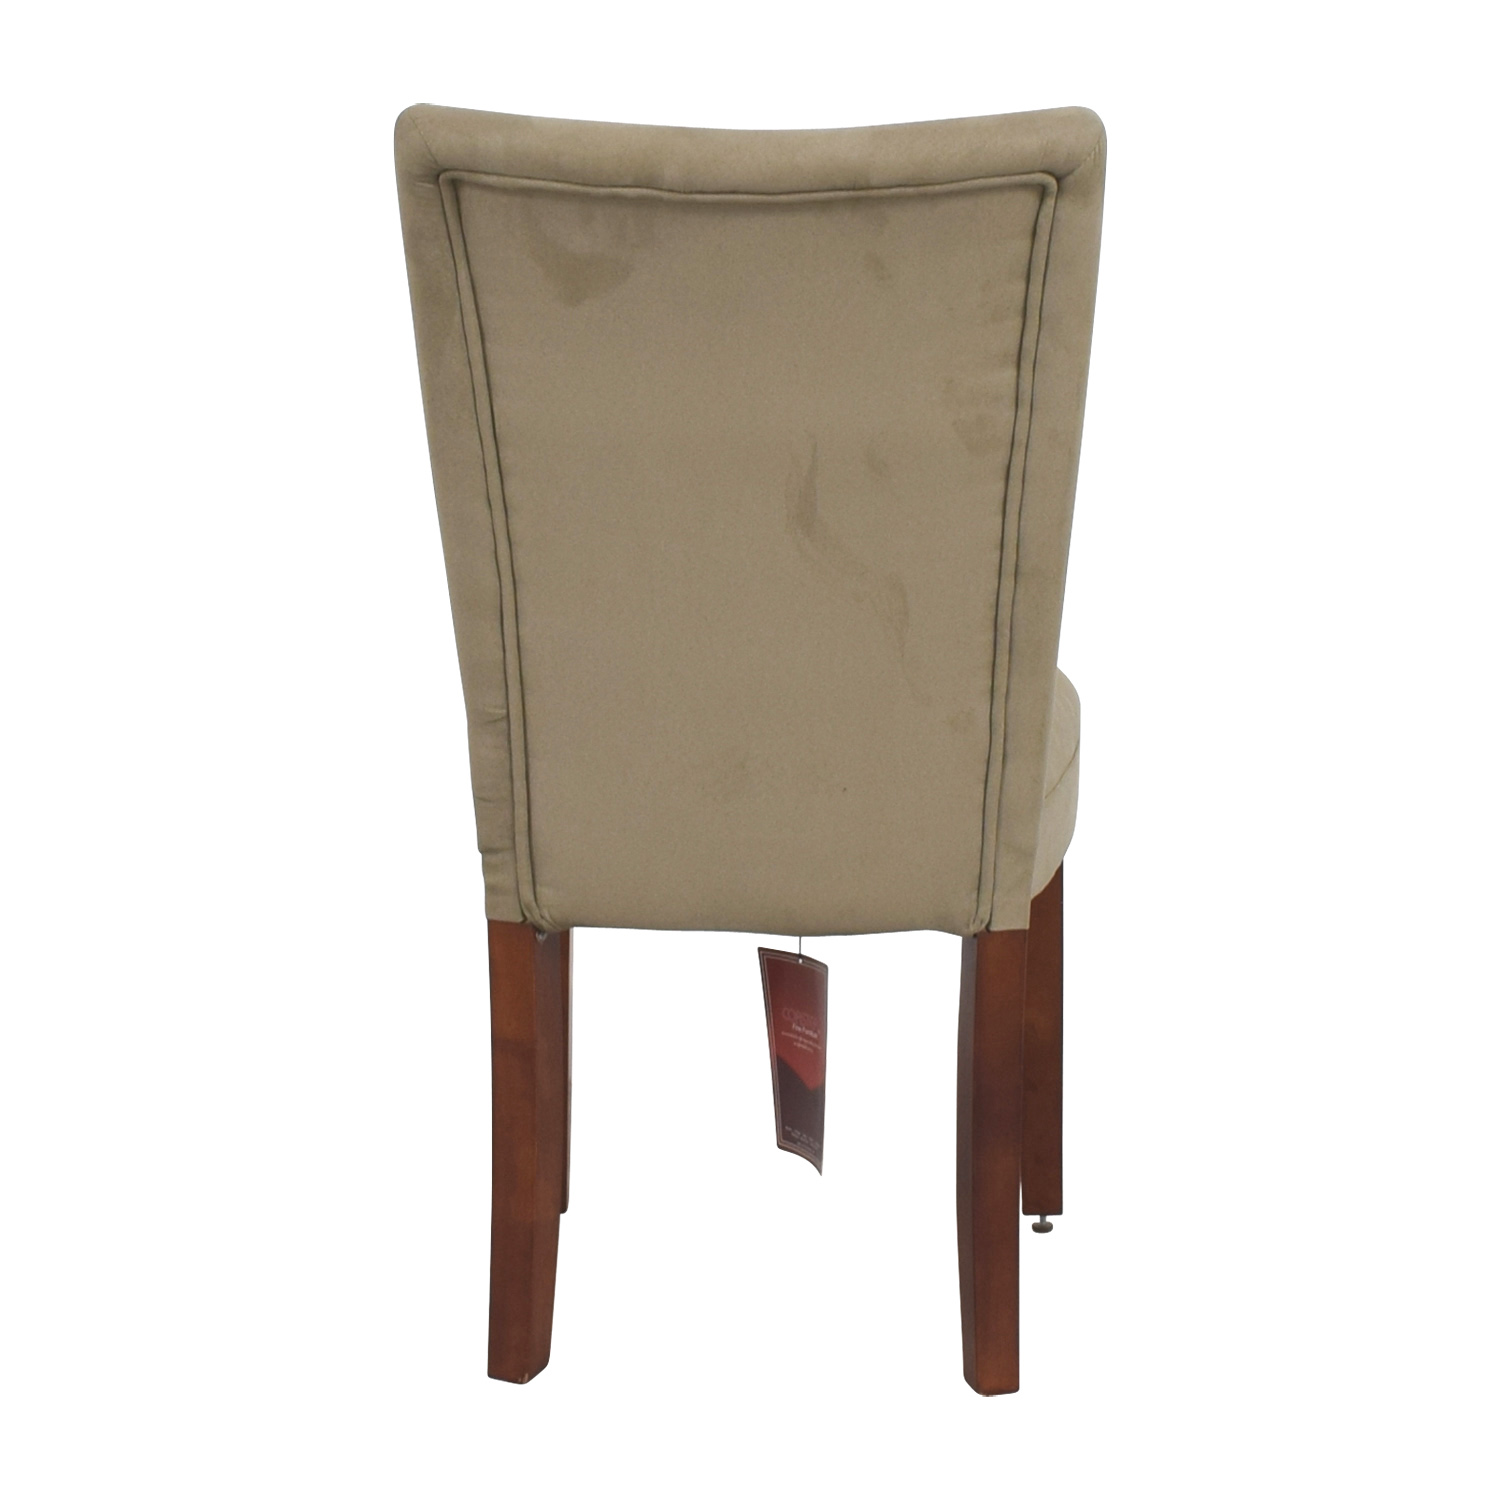 buy Coaster High Back Parsons Chair in Taupe Microfiber Fabric Coaster Chairs